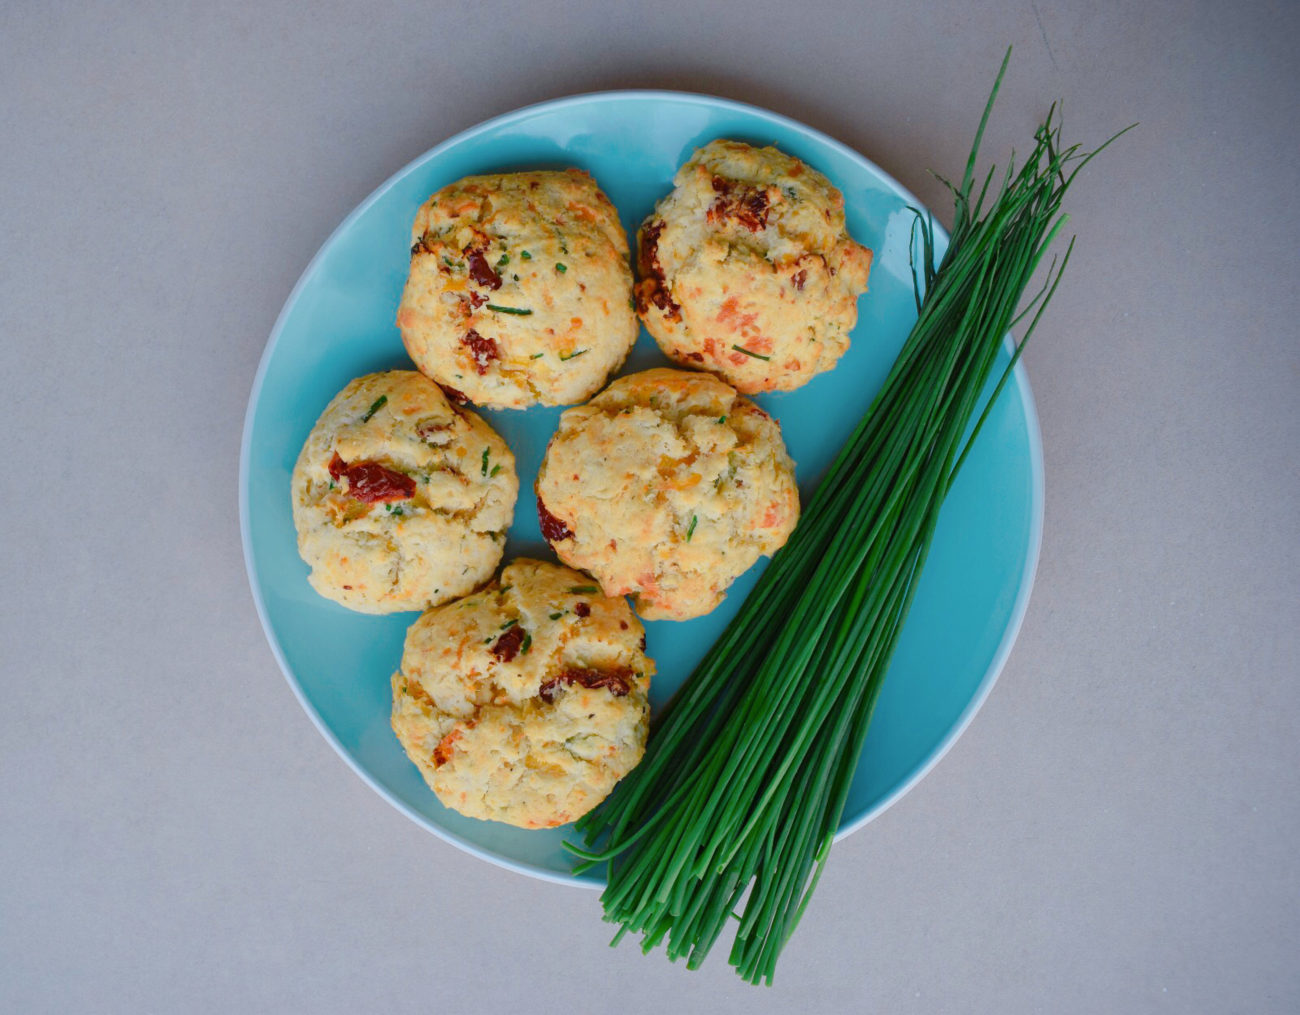 SUNDRIED TOMATO & CHIVE BISCUITS